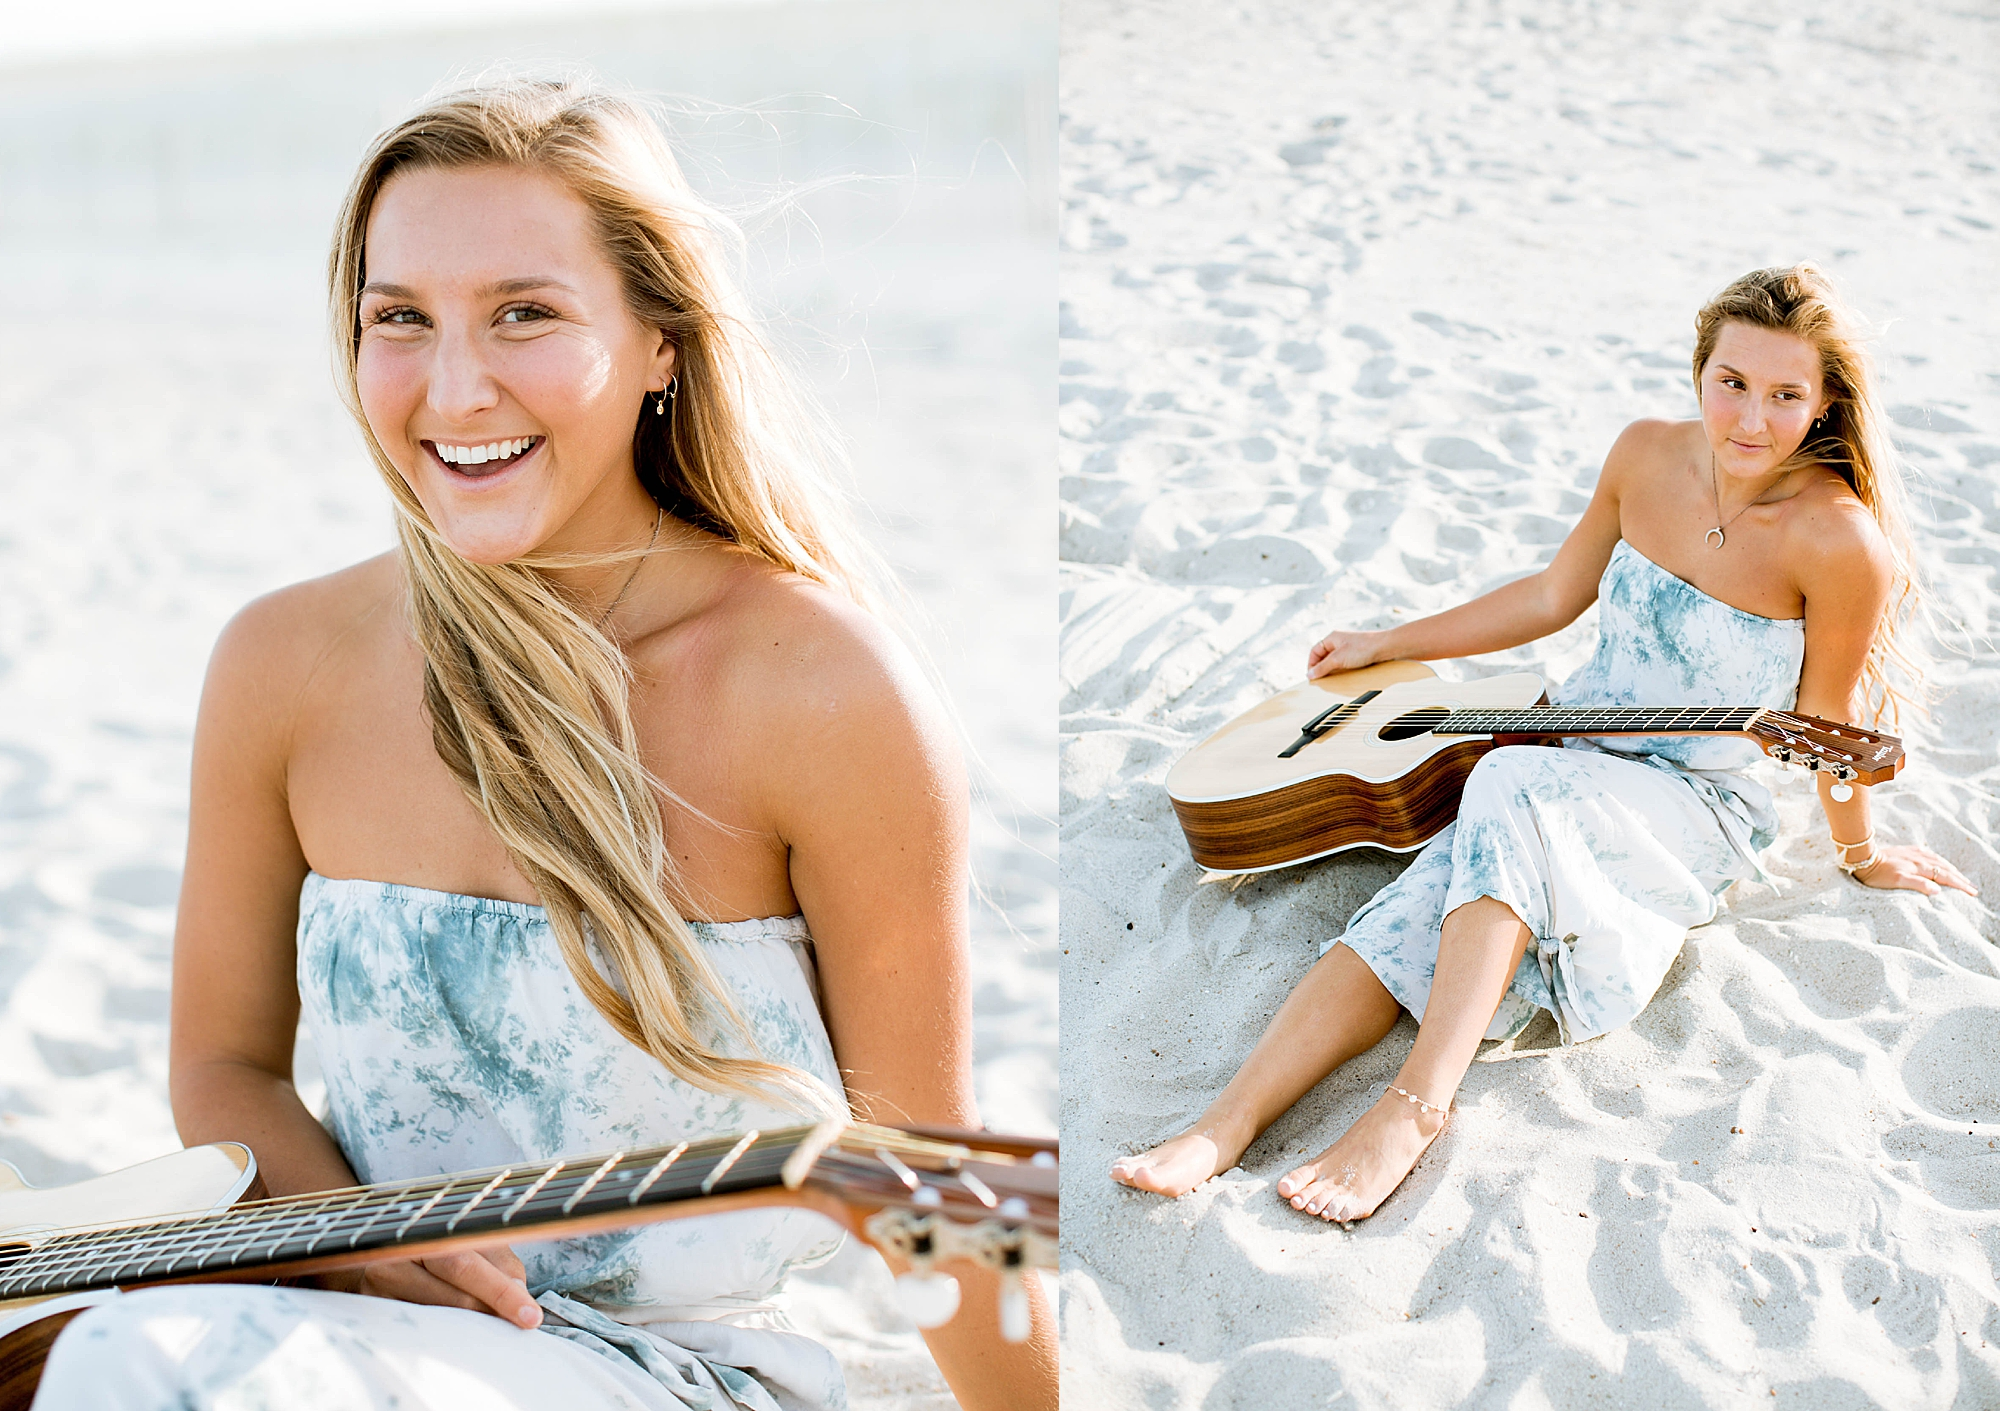 Natural and Bright Seaside Park New Jersey Boho Lifestlyle Beach Portrait Photography by Kelee Bovelle_0009.jpg